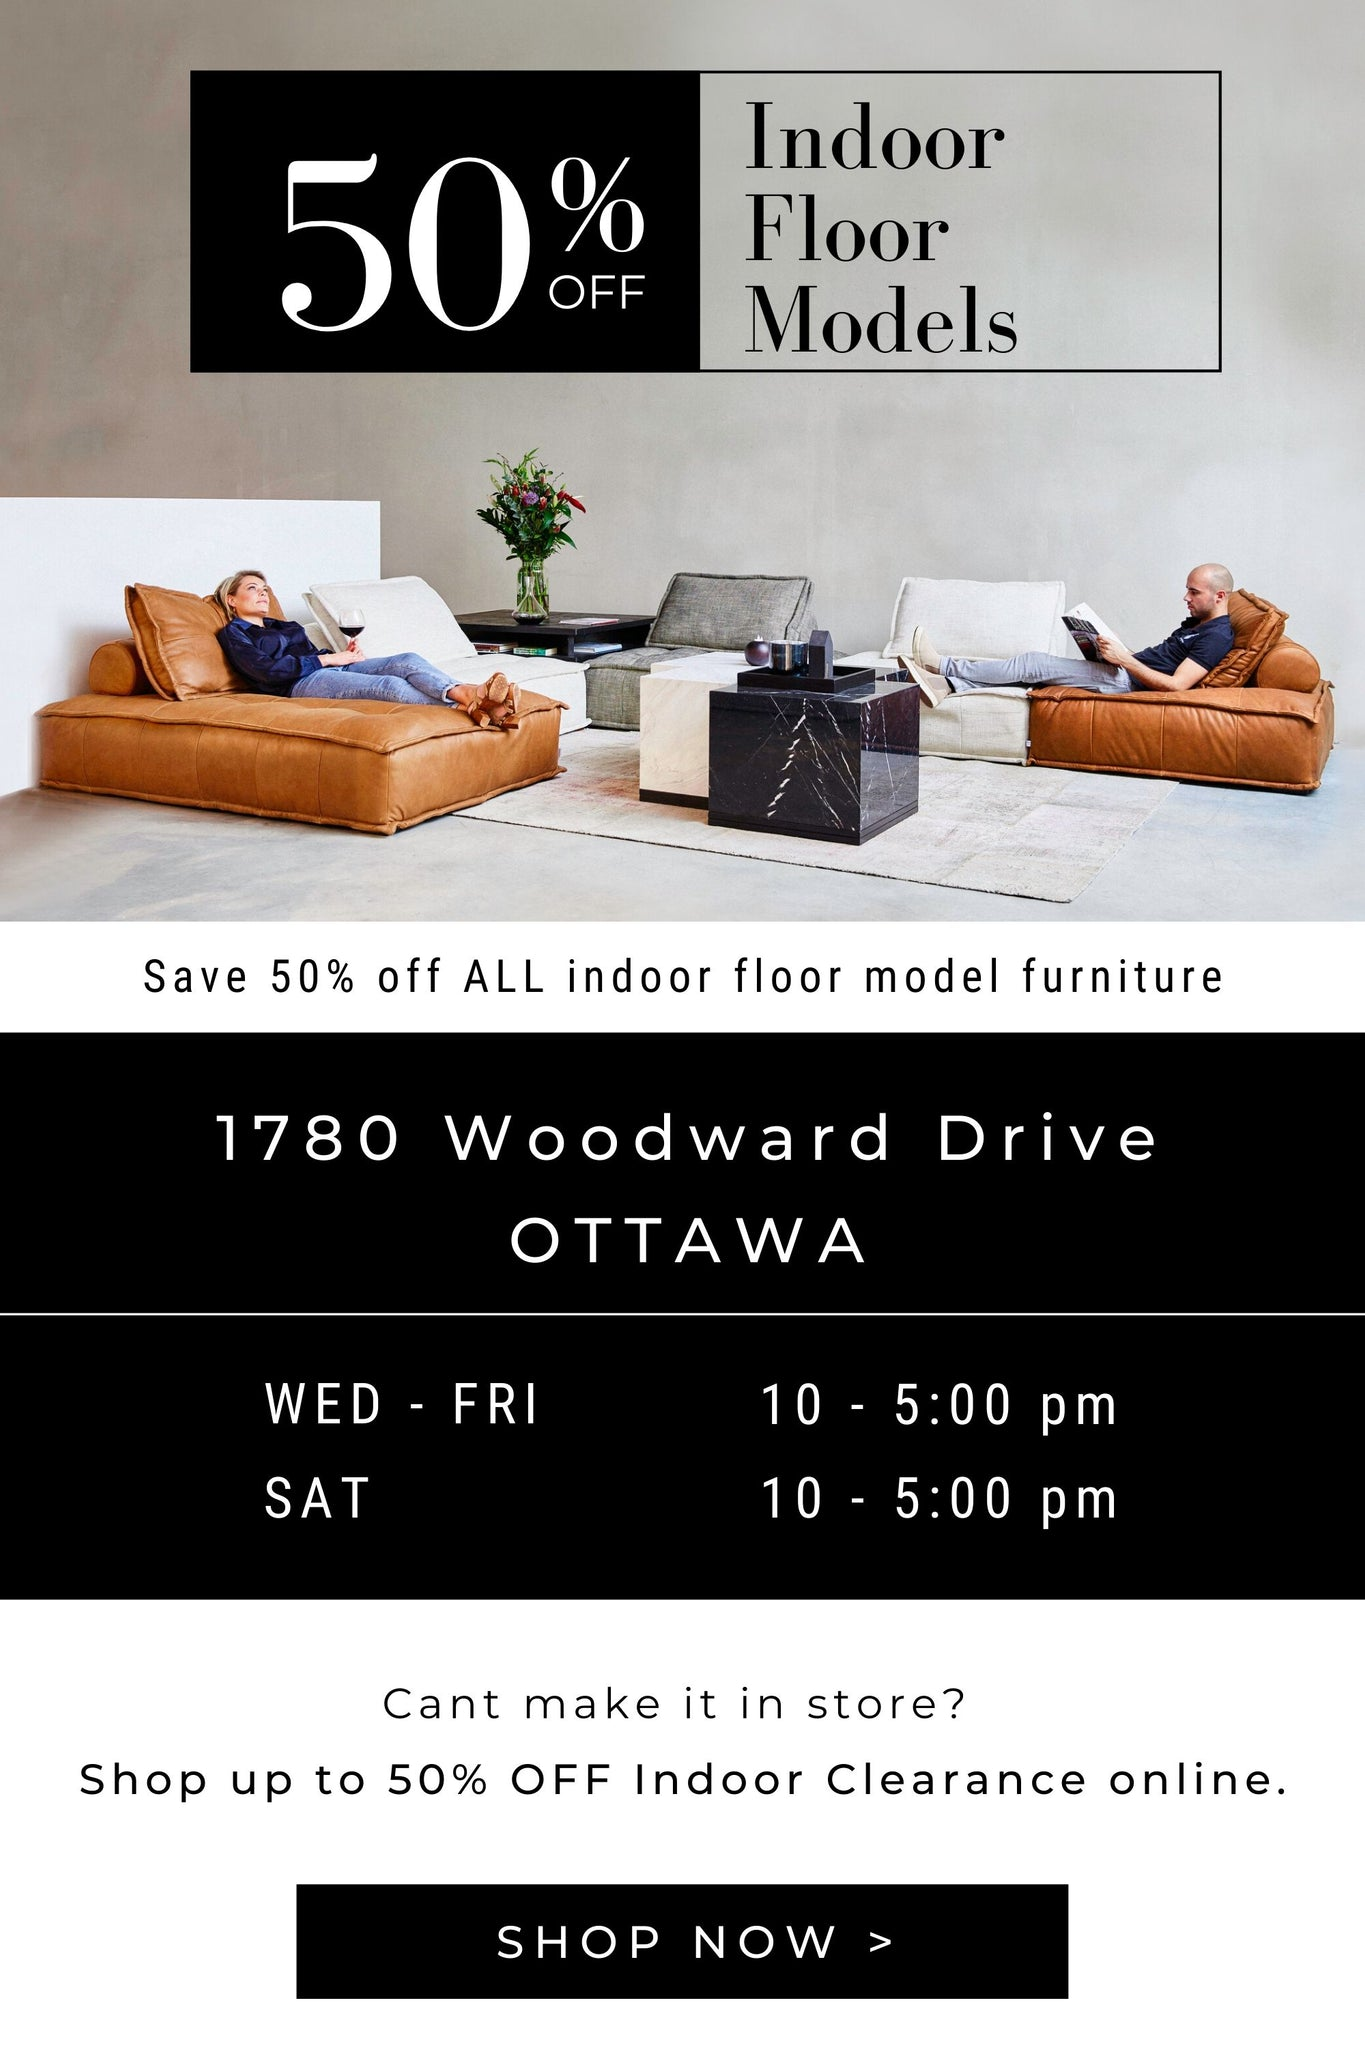 Save 50% Off all indoor floor model furniture at Hauser Ottawa